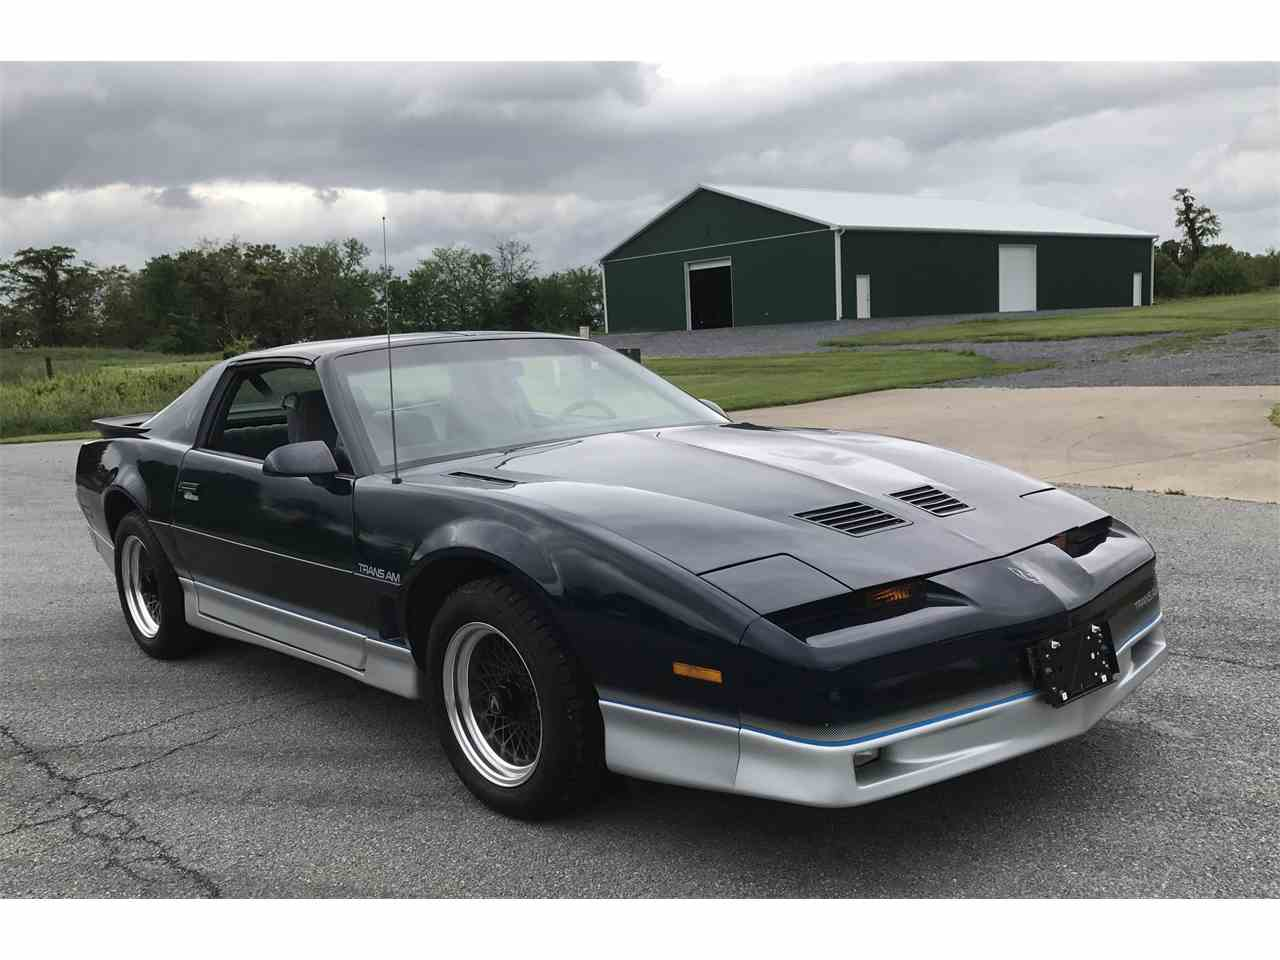 86 pontiac trans am 1986 pontiac trans am third. Black Bedroom Furniture Sets. Home Design Ideas